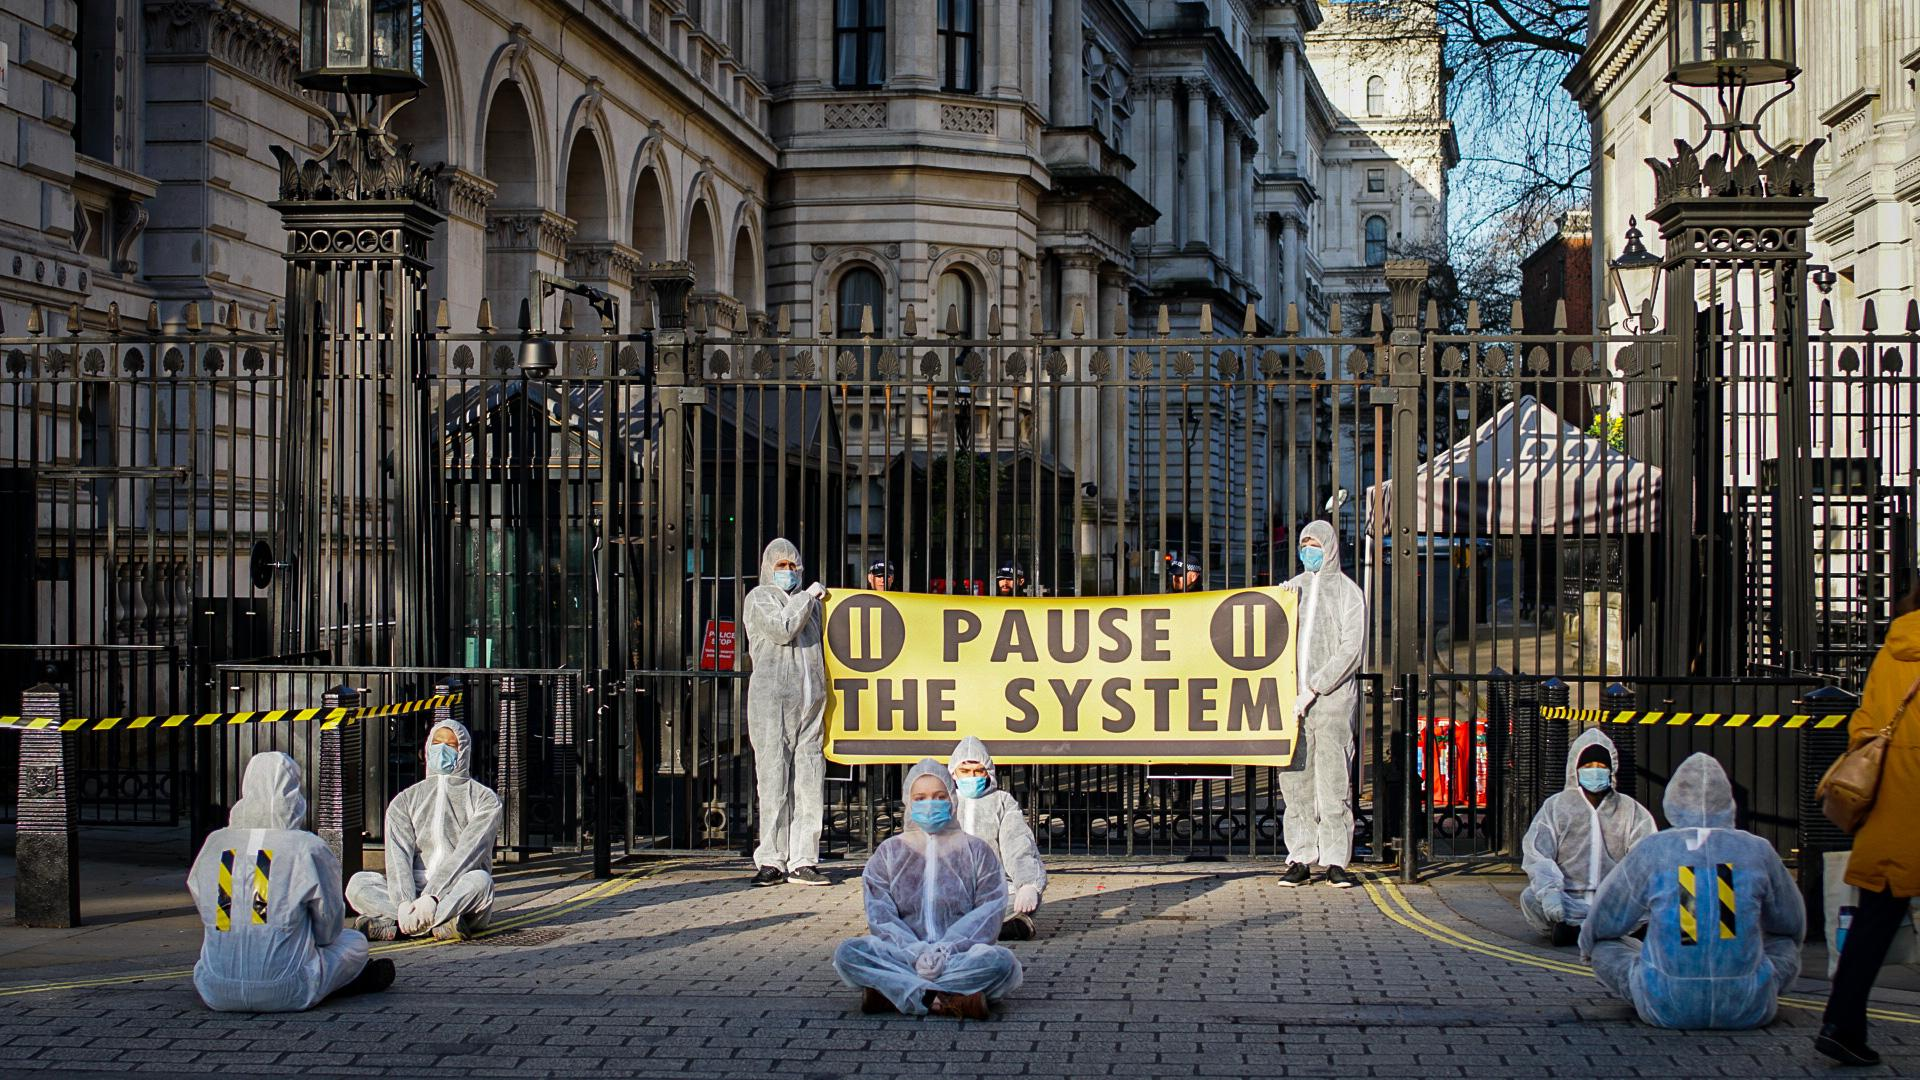 Protestors wearing hamzat suits congregated outside Downing Street on Monday to demand action on coronavirus.